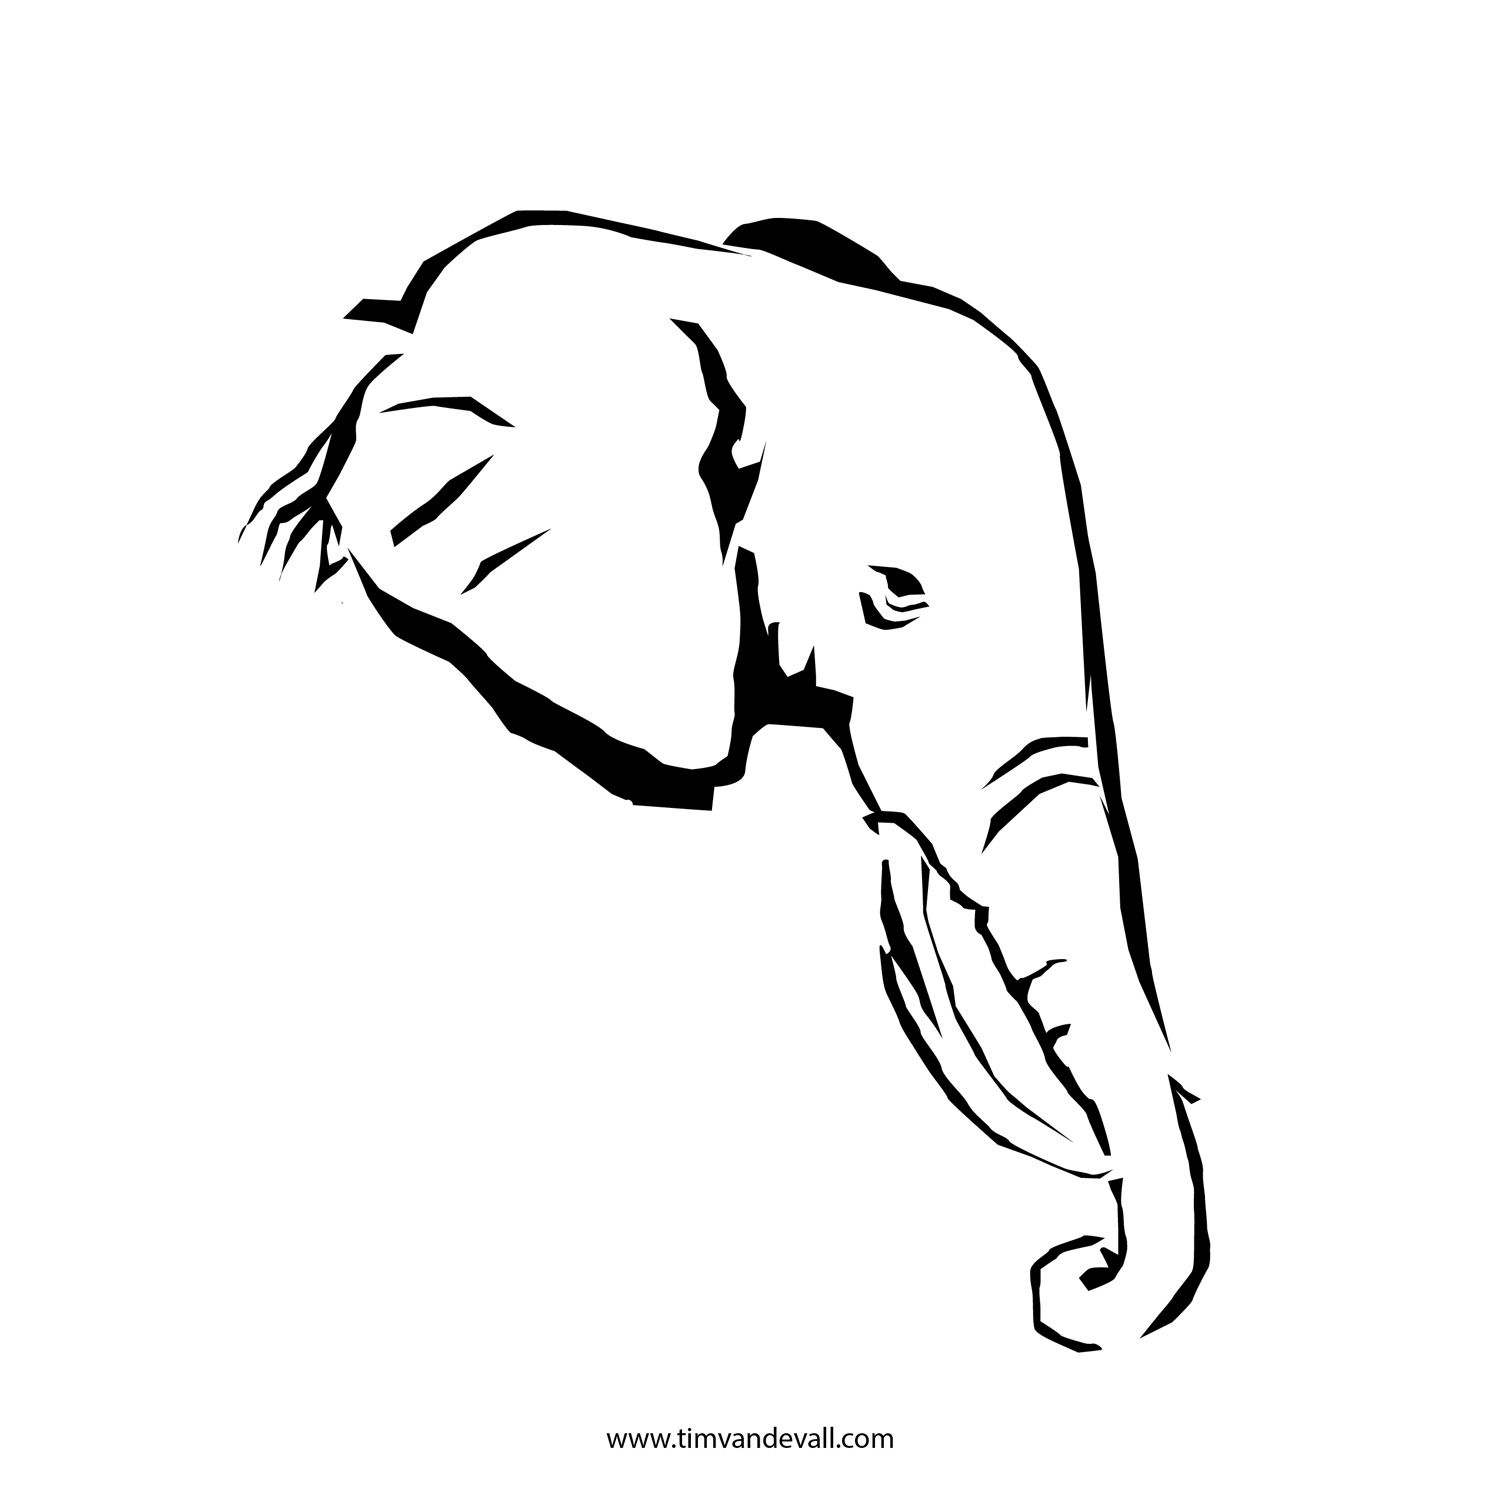 Best Photos Of Elephant Head Outline Black And White Elephant Clipart Best Clipart Best Outline Illustration Elephant Outline Elephant Stencil